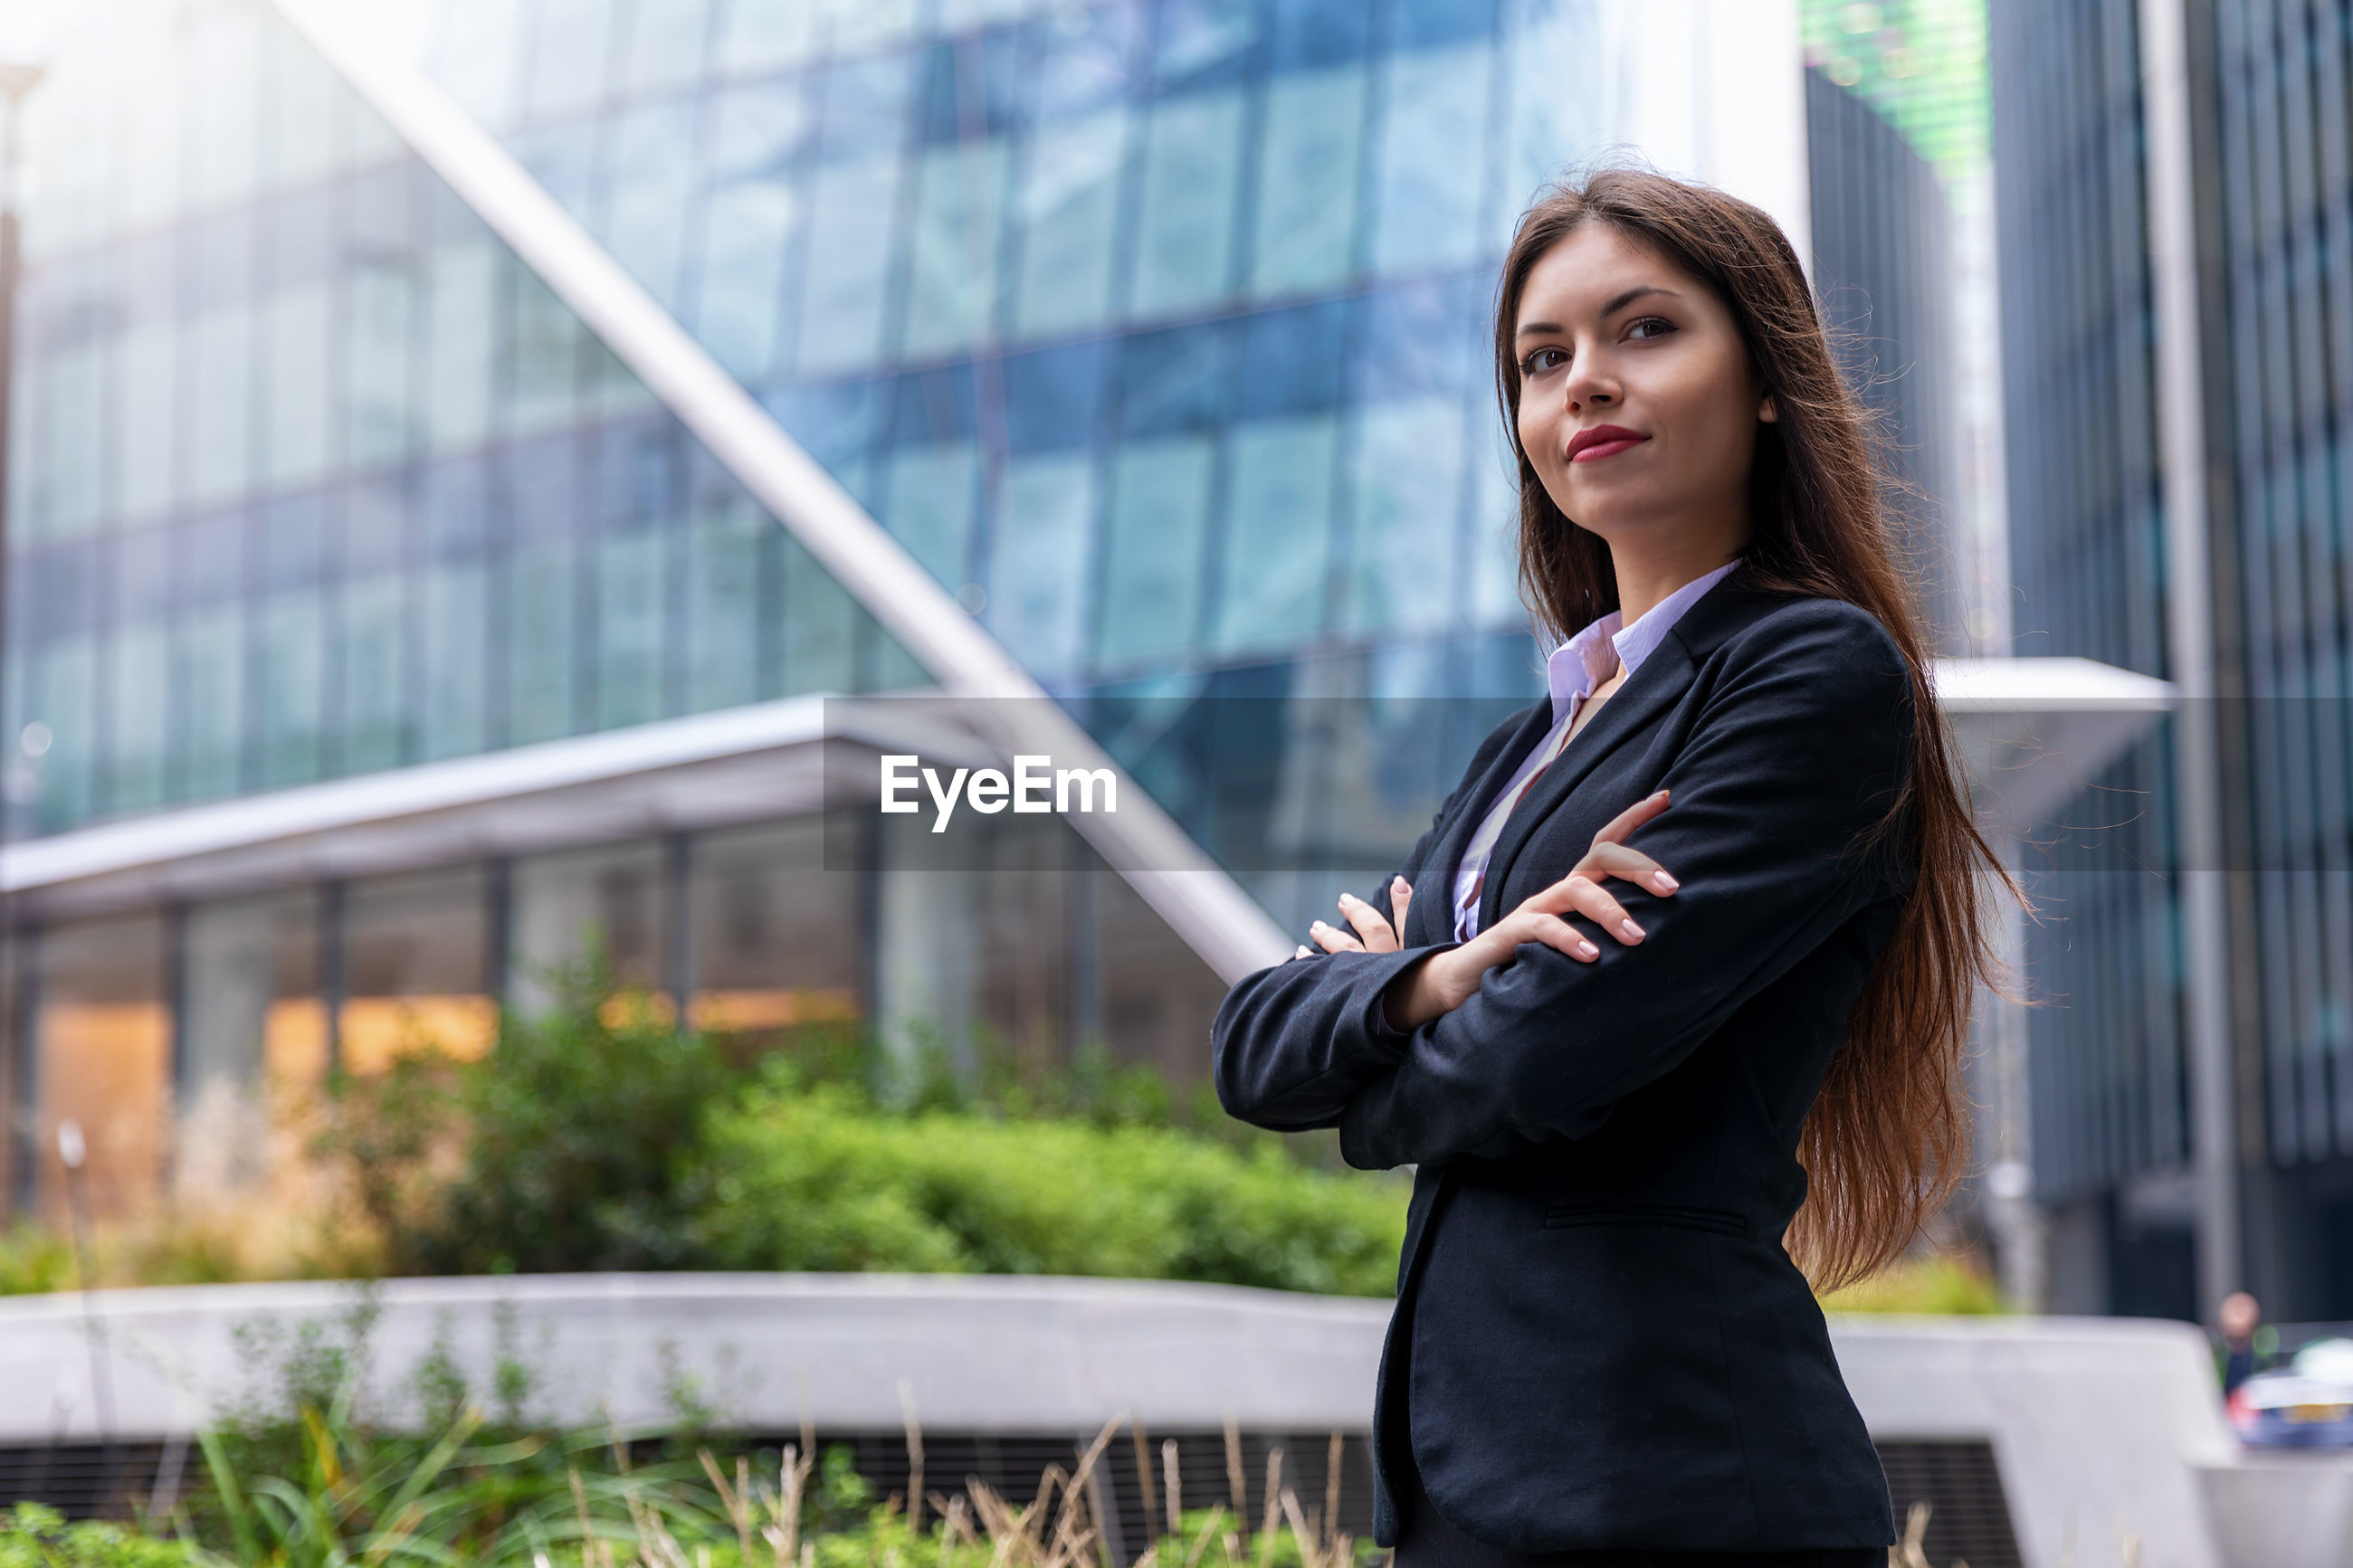 Confident businesswoman with arms crossed standing in city